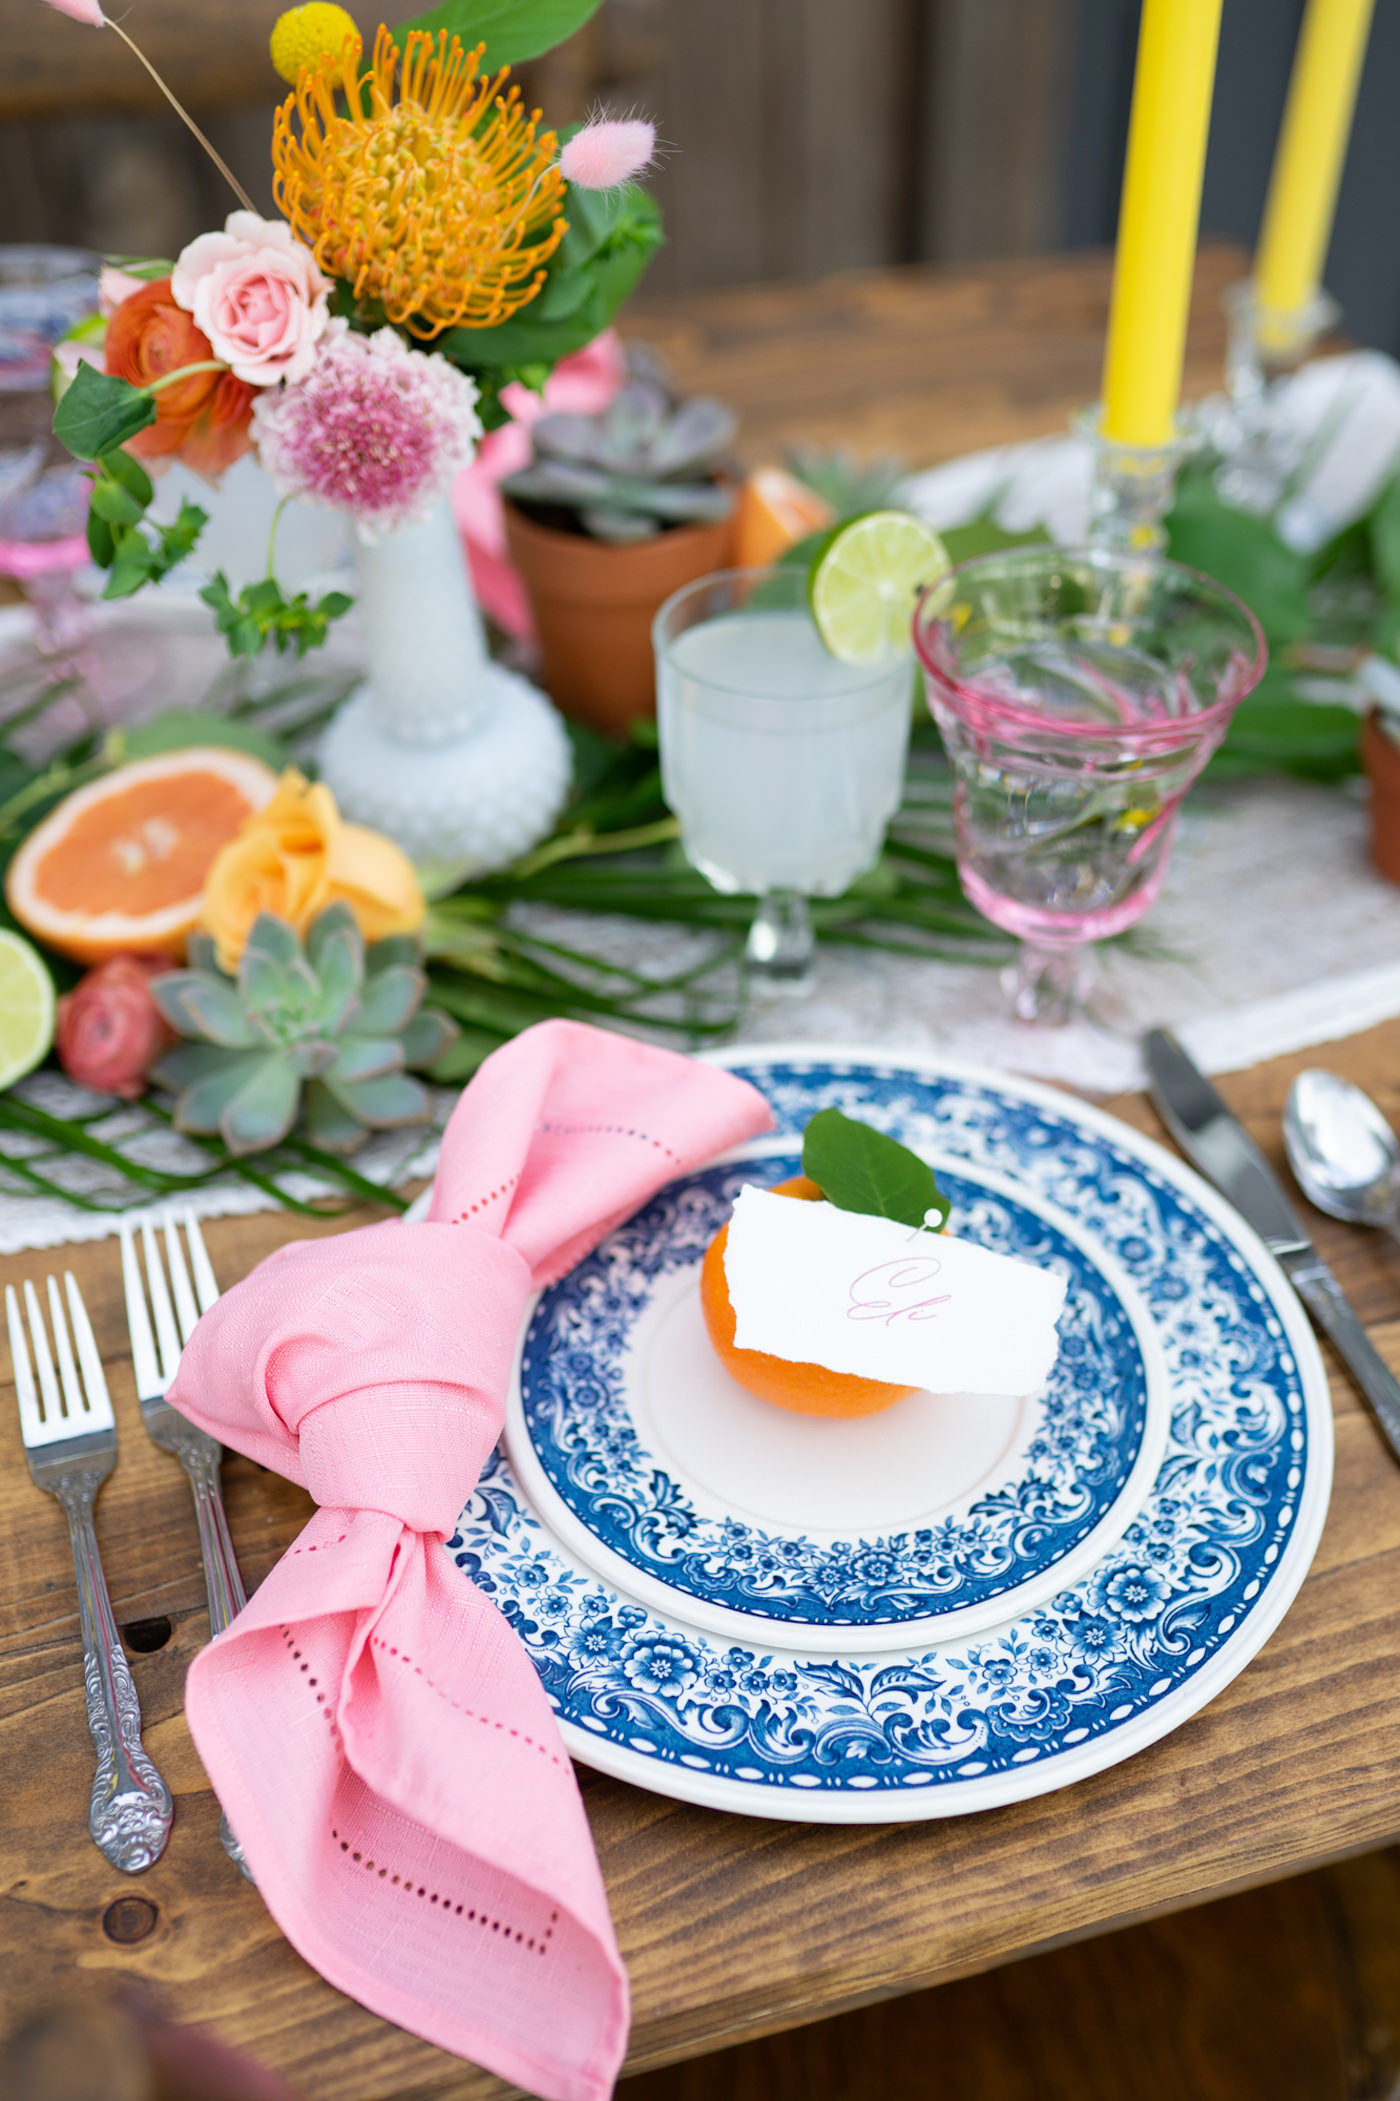 Bright Colorful Florida Citrus Wedding Inspiration | Outdoor Reception Wood Farm Feasting Table Wedding Centerpiece with Greenery Garland with Oranges and Succulents and Colorful Taper Candles | Wedding Place Settings with Vintage Blue China and Pink Glass Goblets and Pink Napkins and Citrus Orange Place Cards